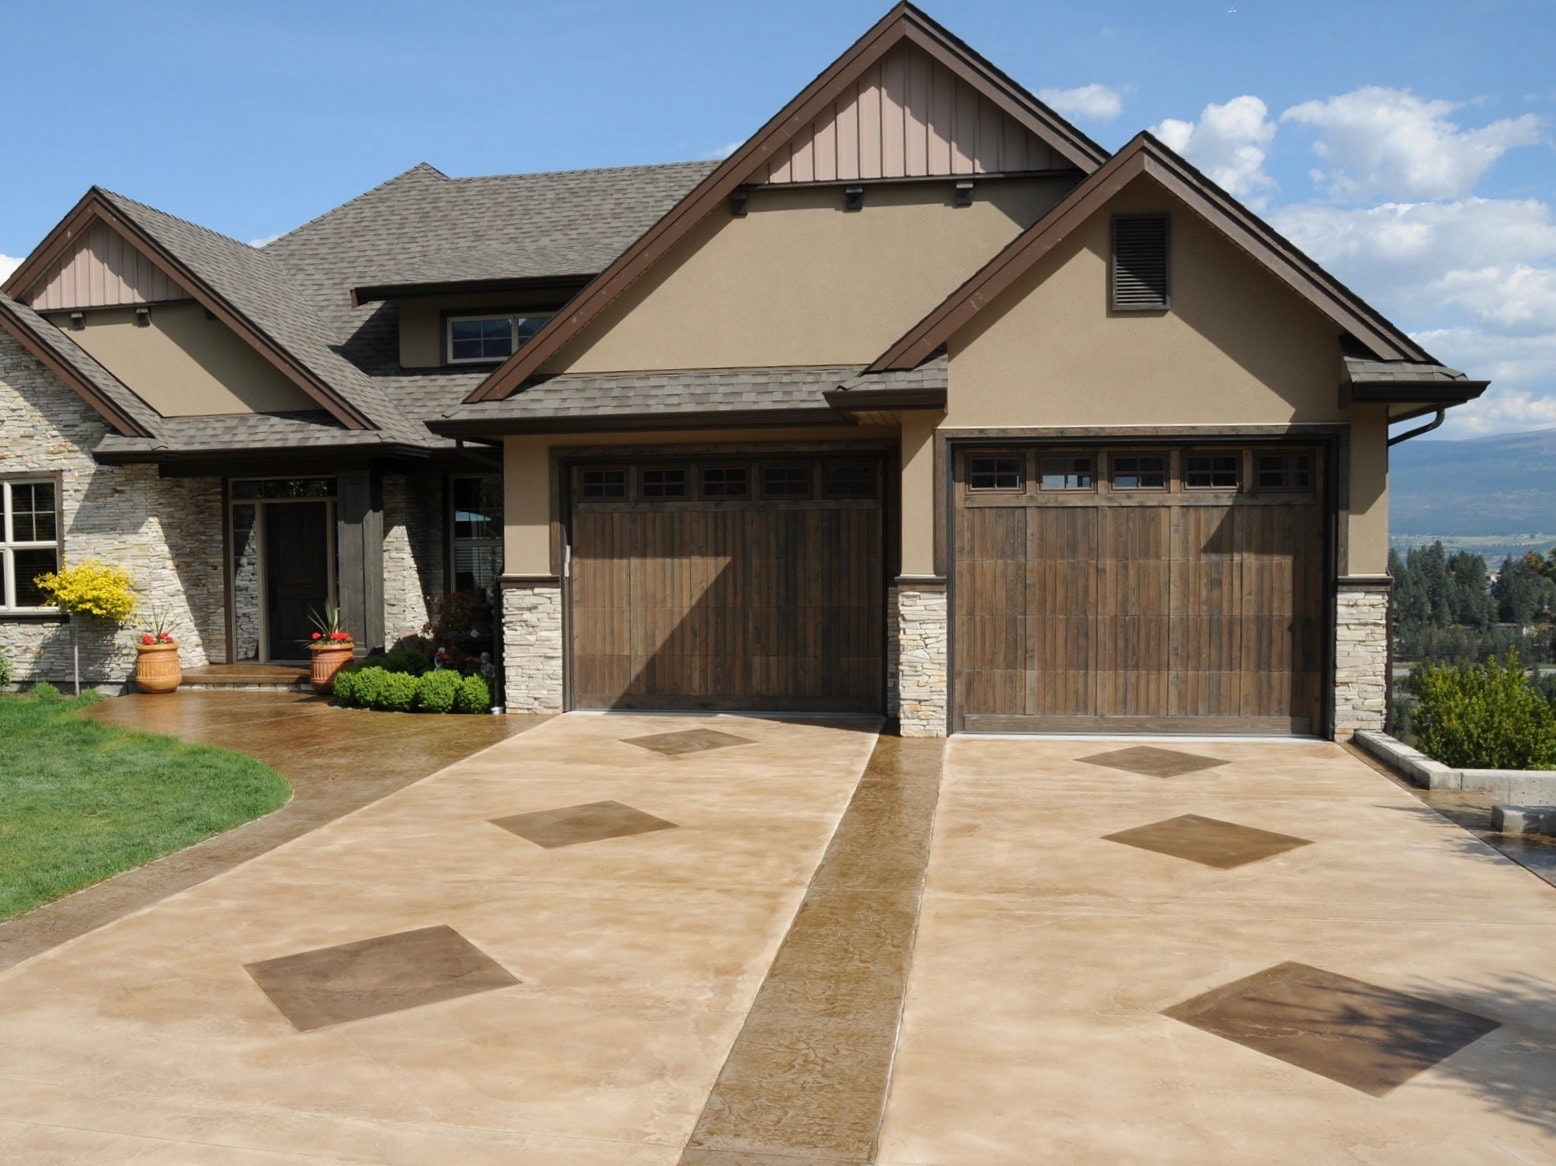 Stone driveway of large residential home